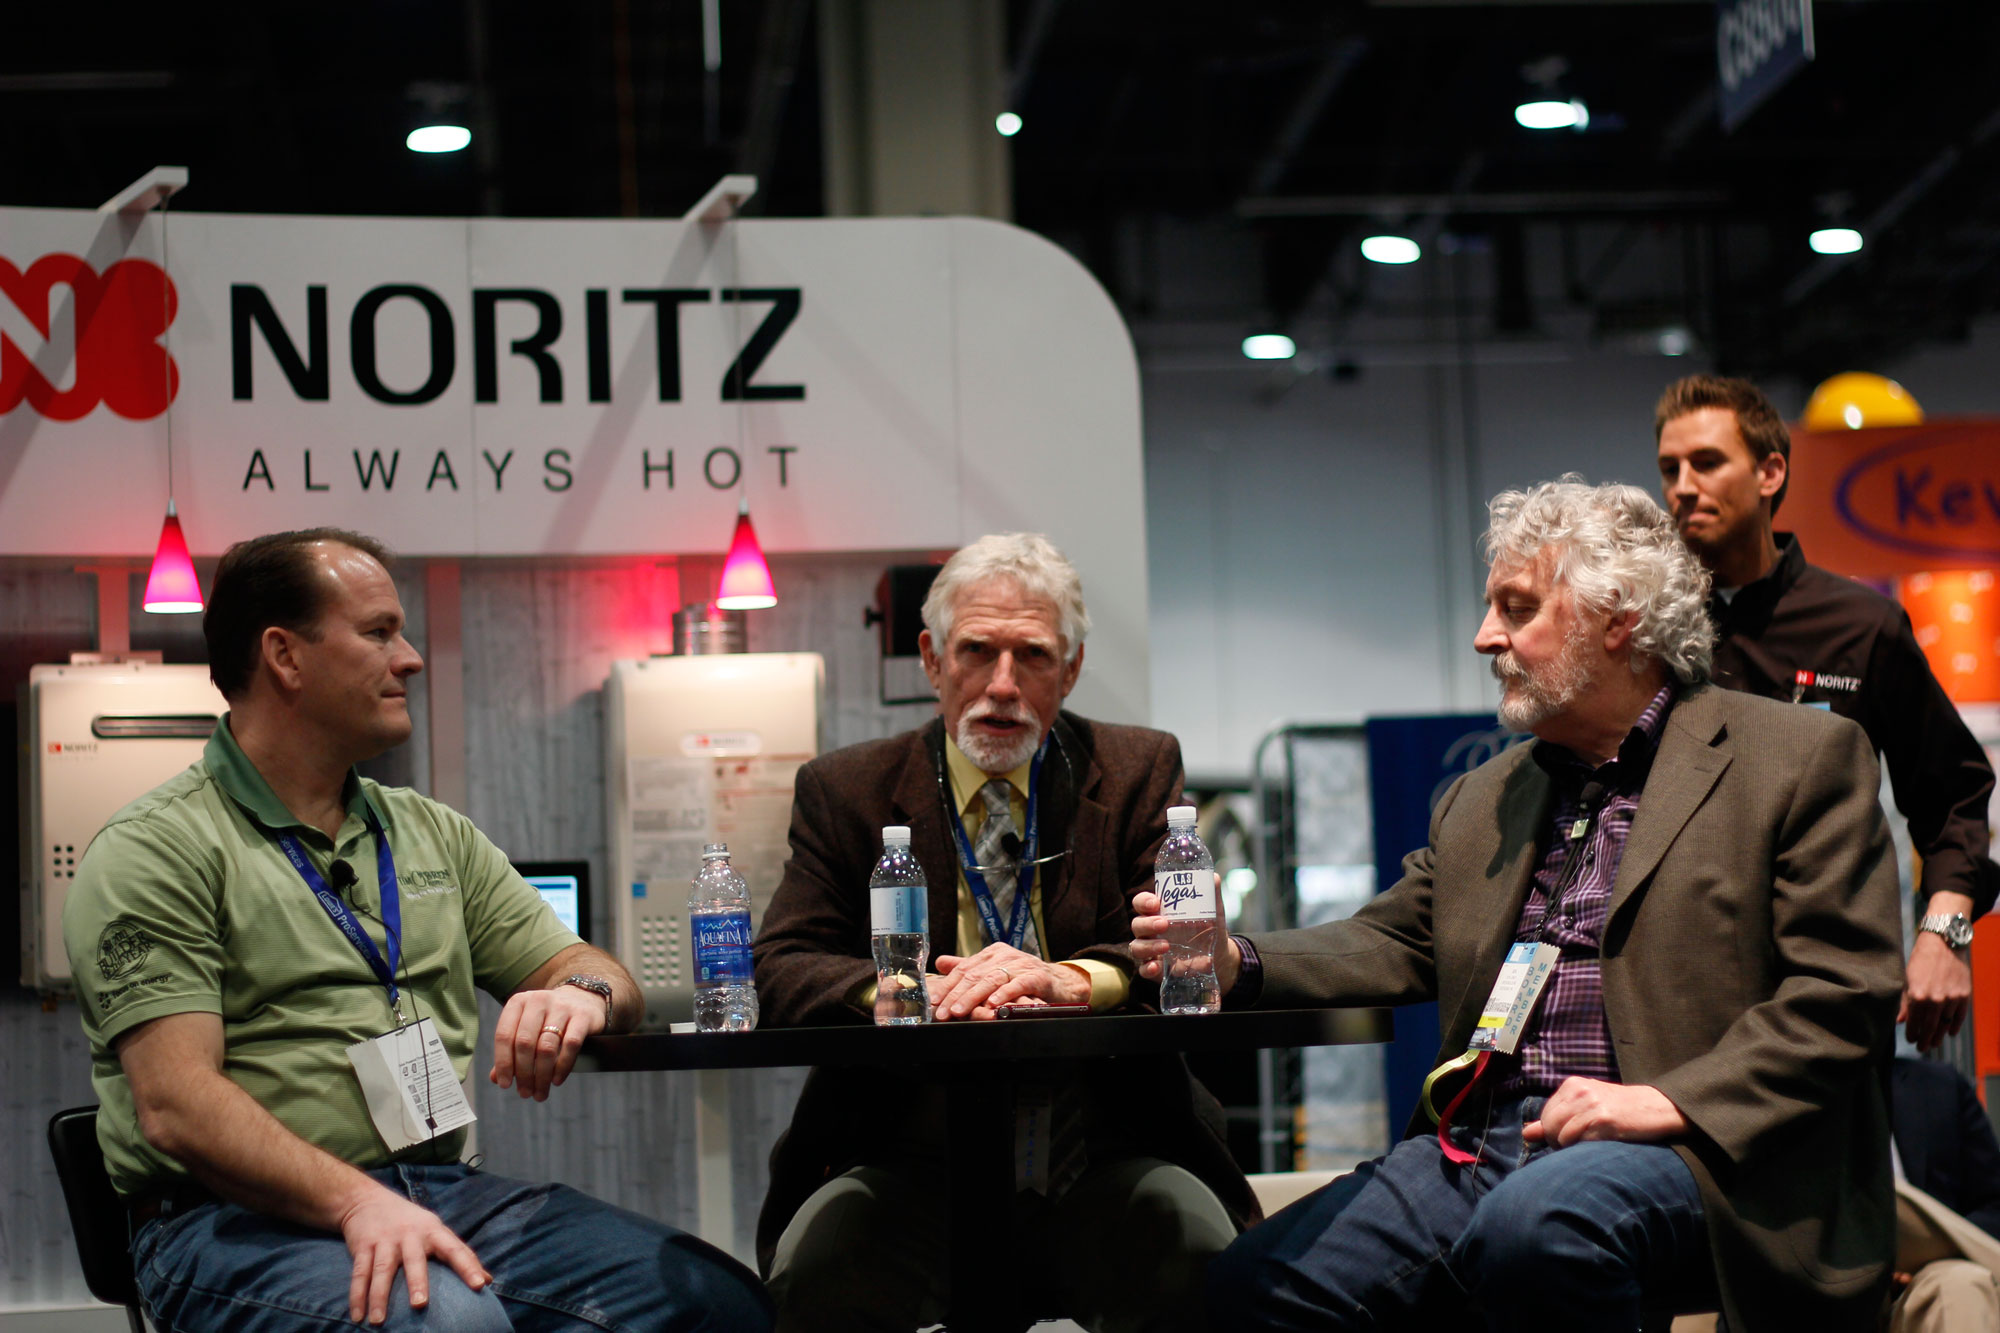 Noritz at Trade Show